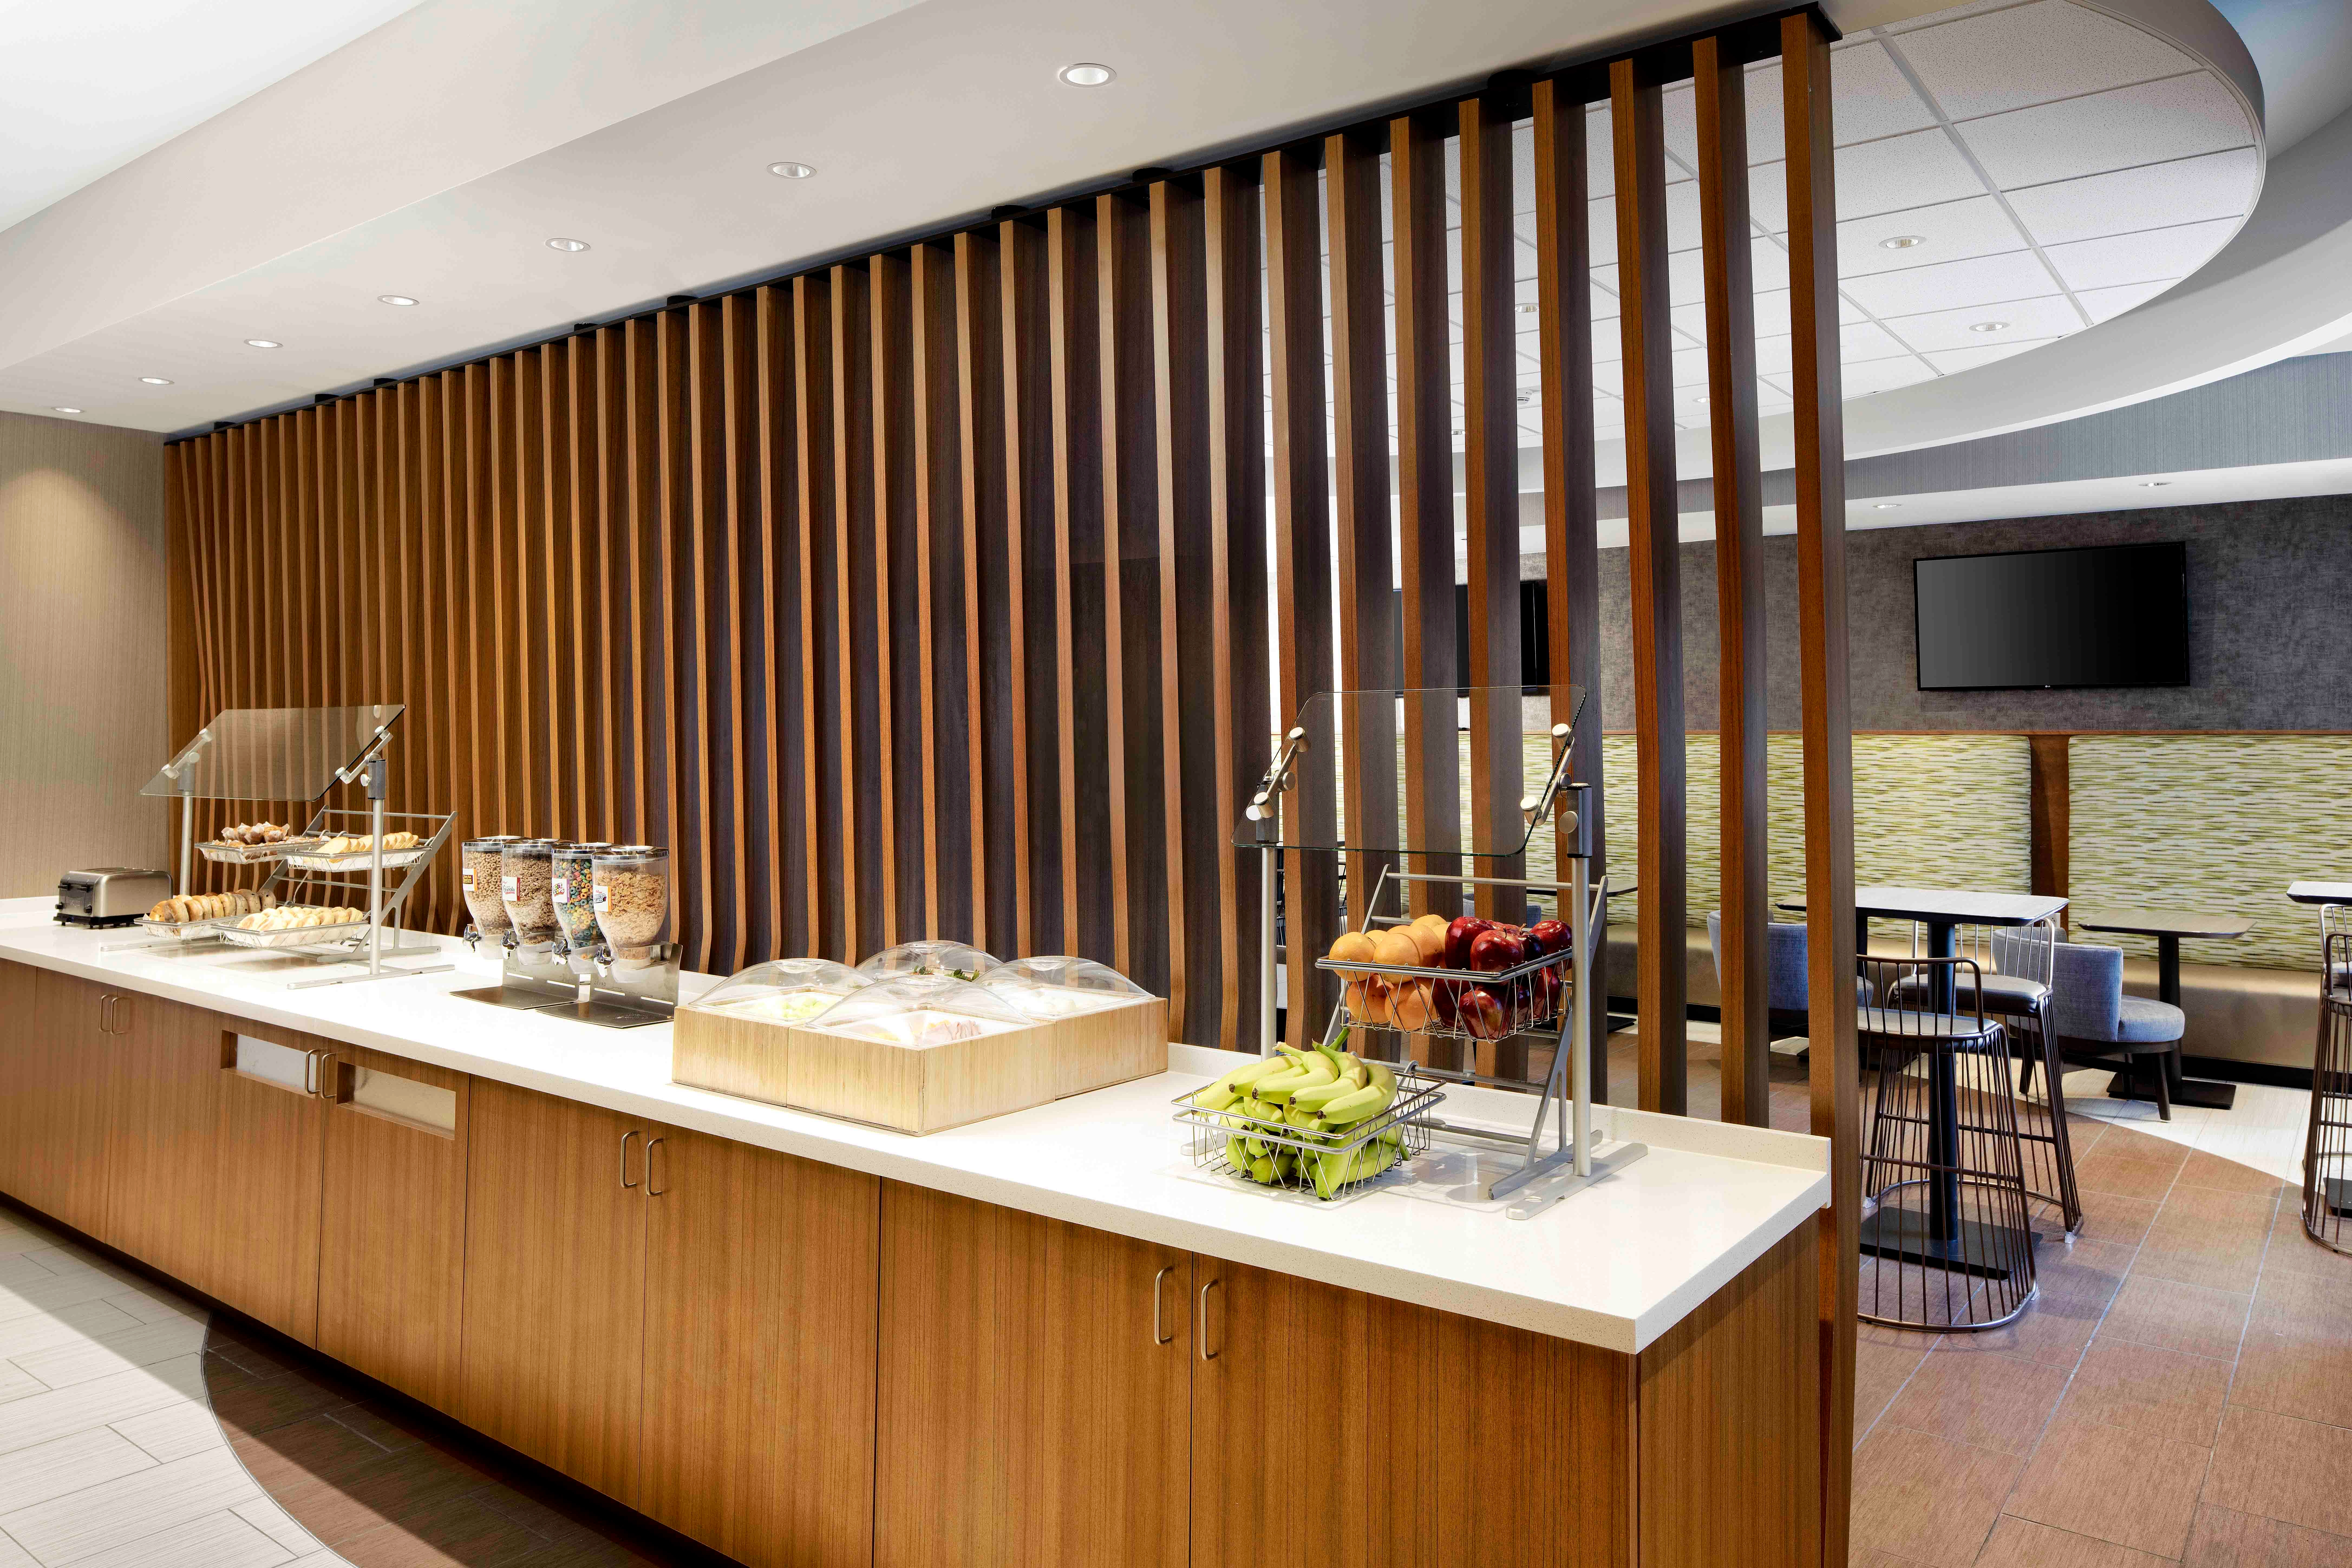 SpringHill Suites by Marriott Indianapolis Downtown image 5